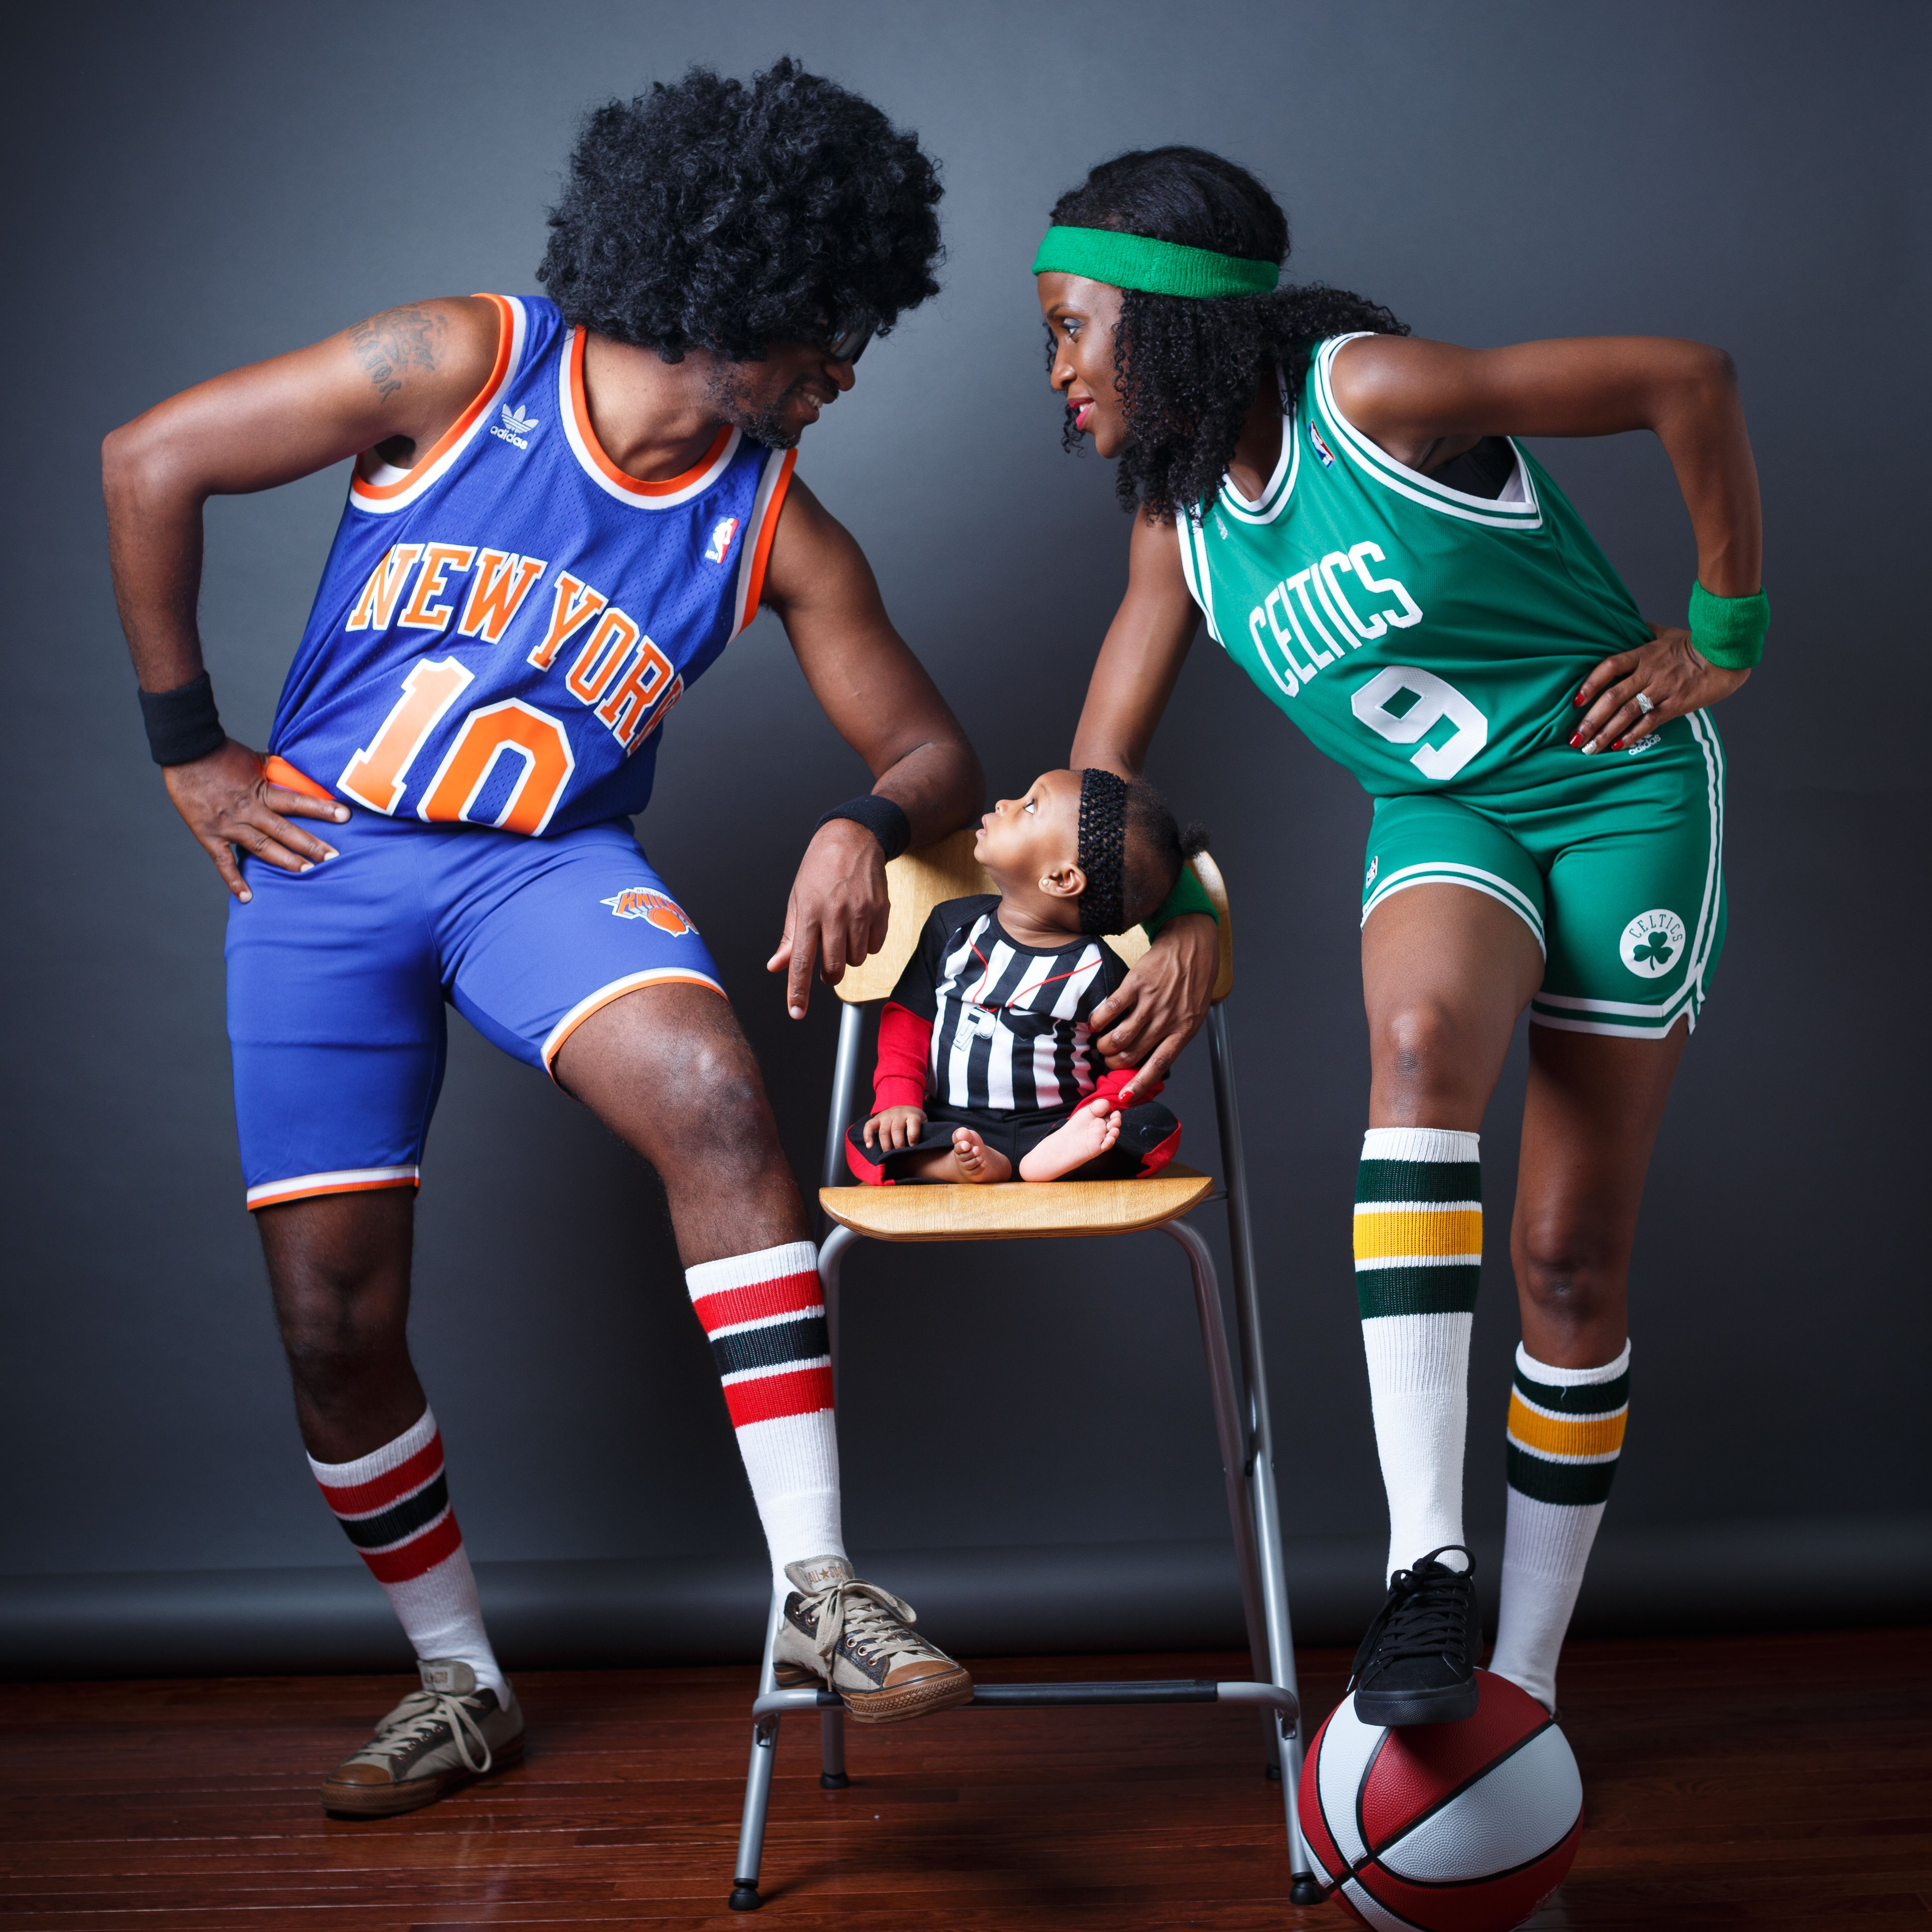 Basketball Themed Family Pictures Family Photoshoot Baby Referee Family Photoshoot Photoshoot Family Pictures